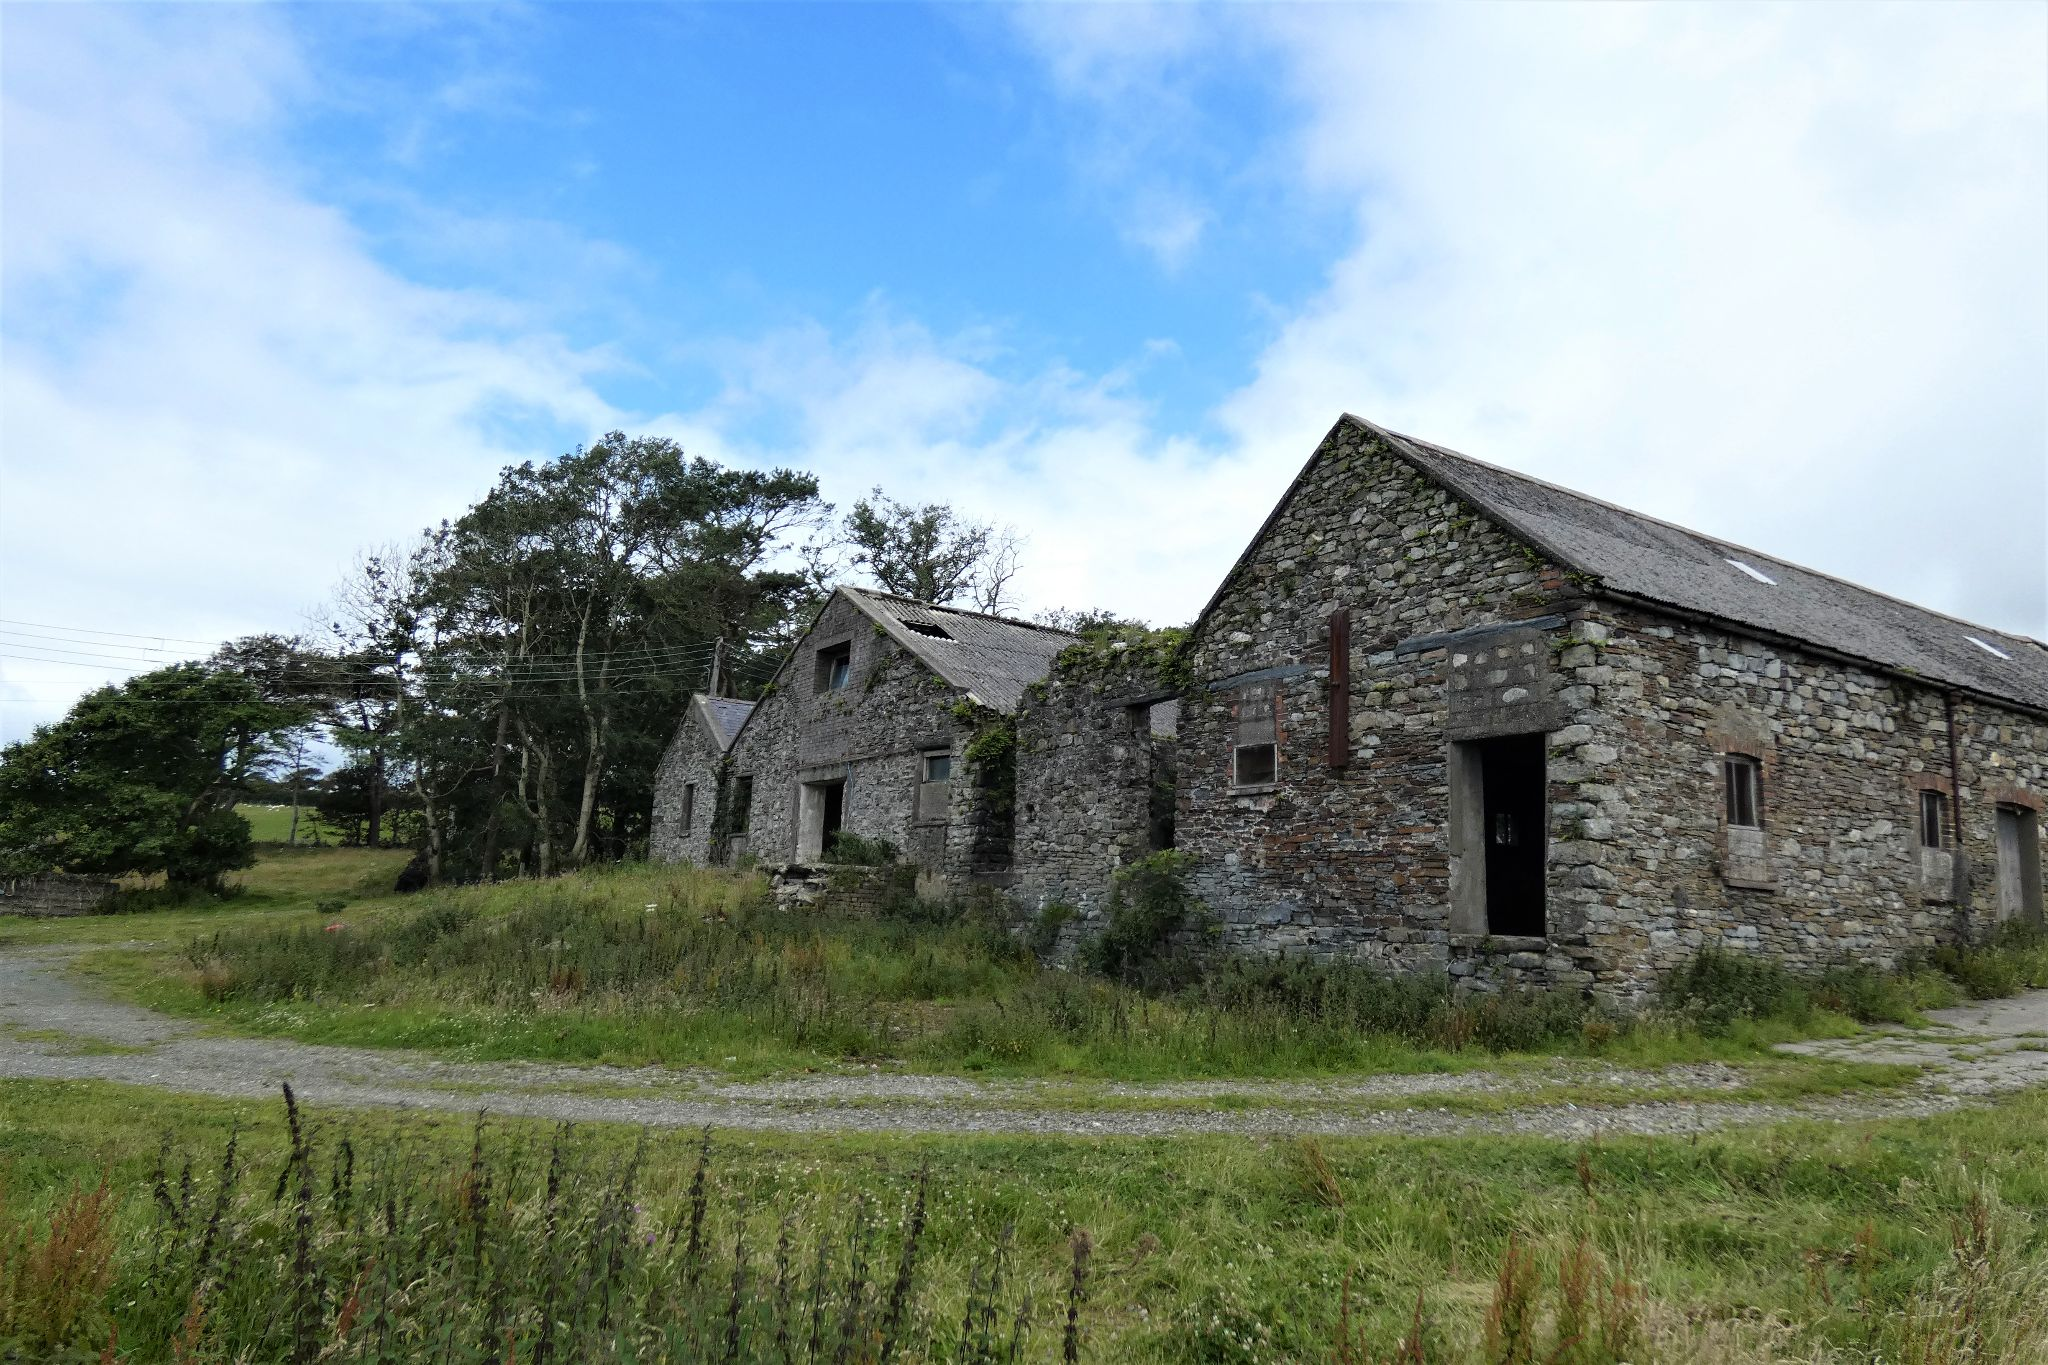 Plot Land For Sale in Abbeylands, Onchan - Property photograph